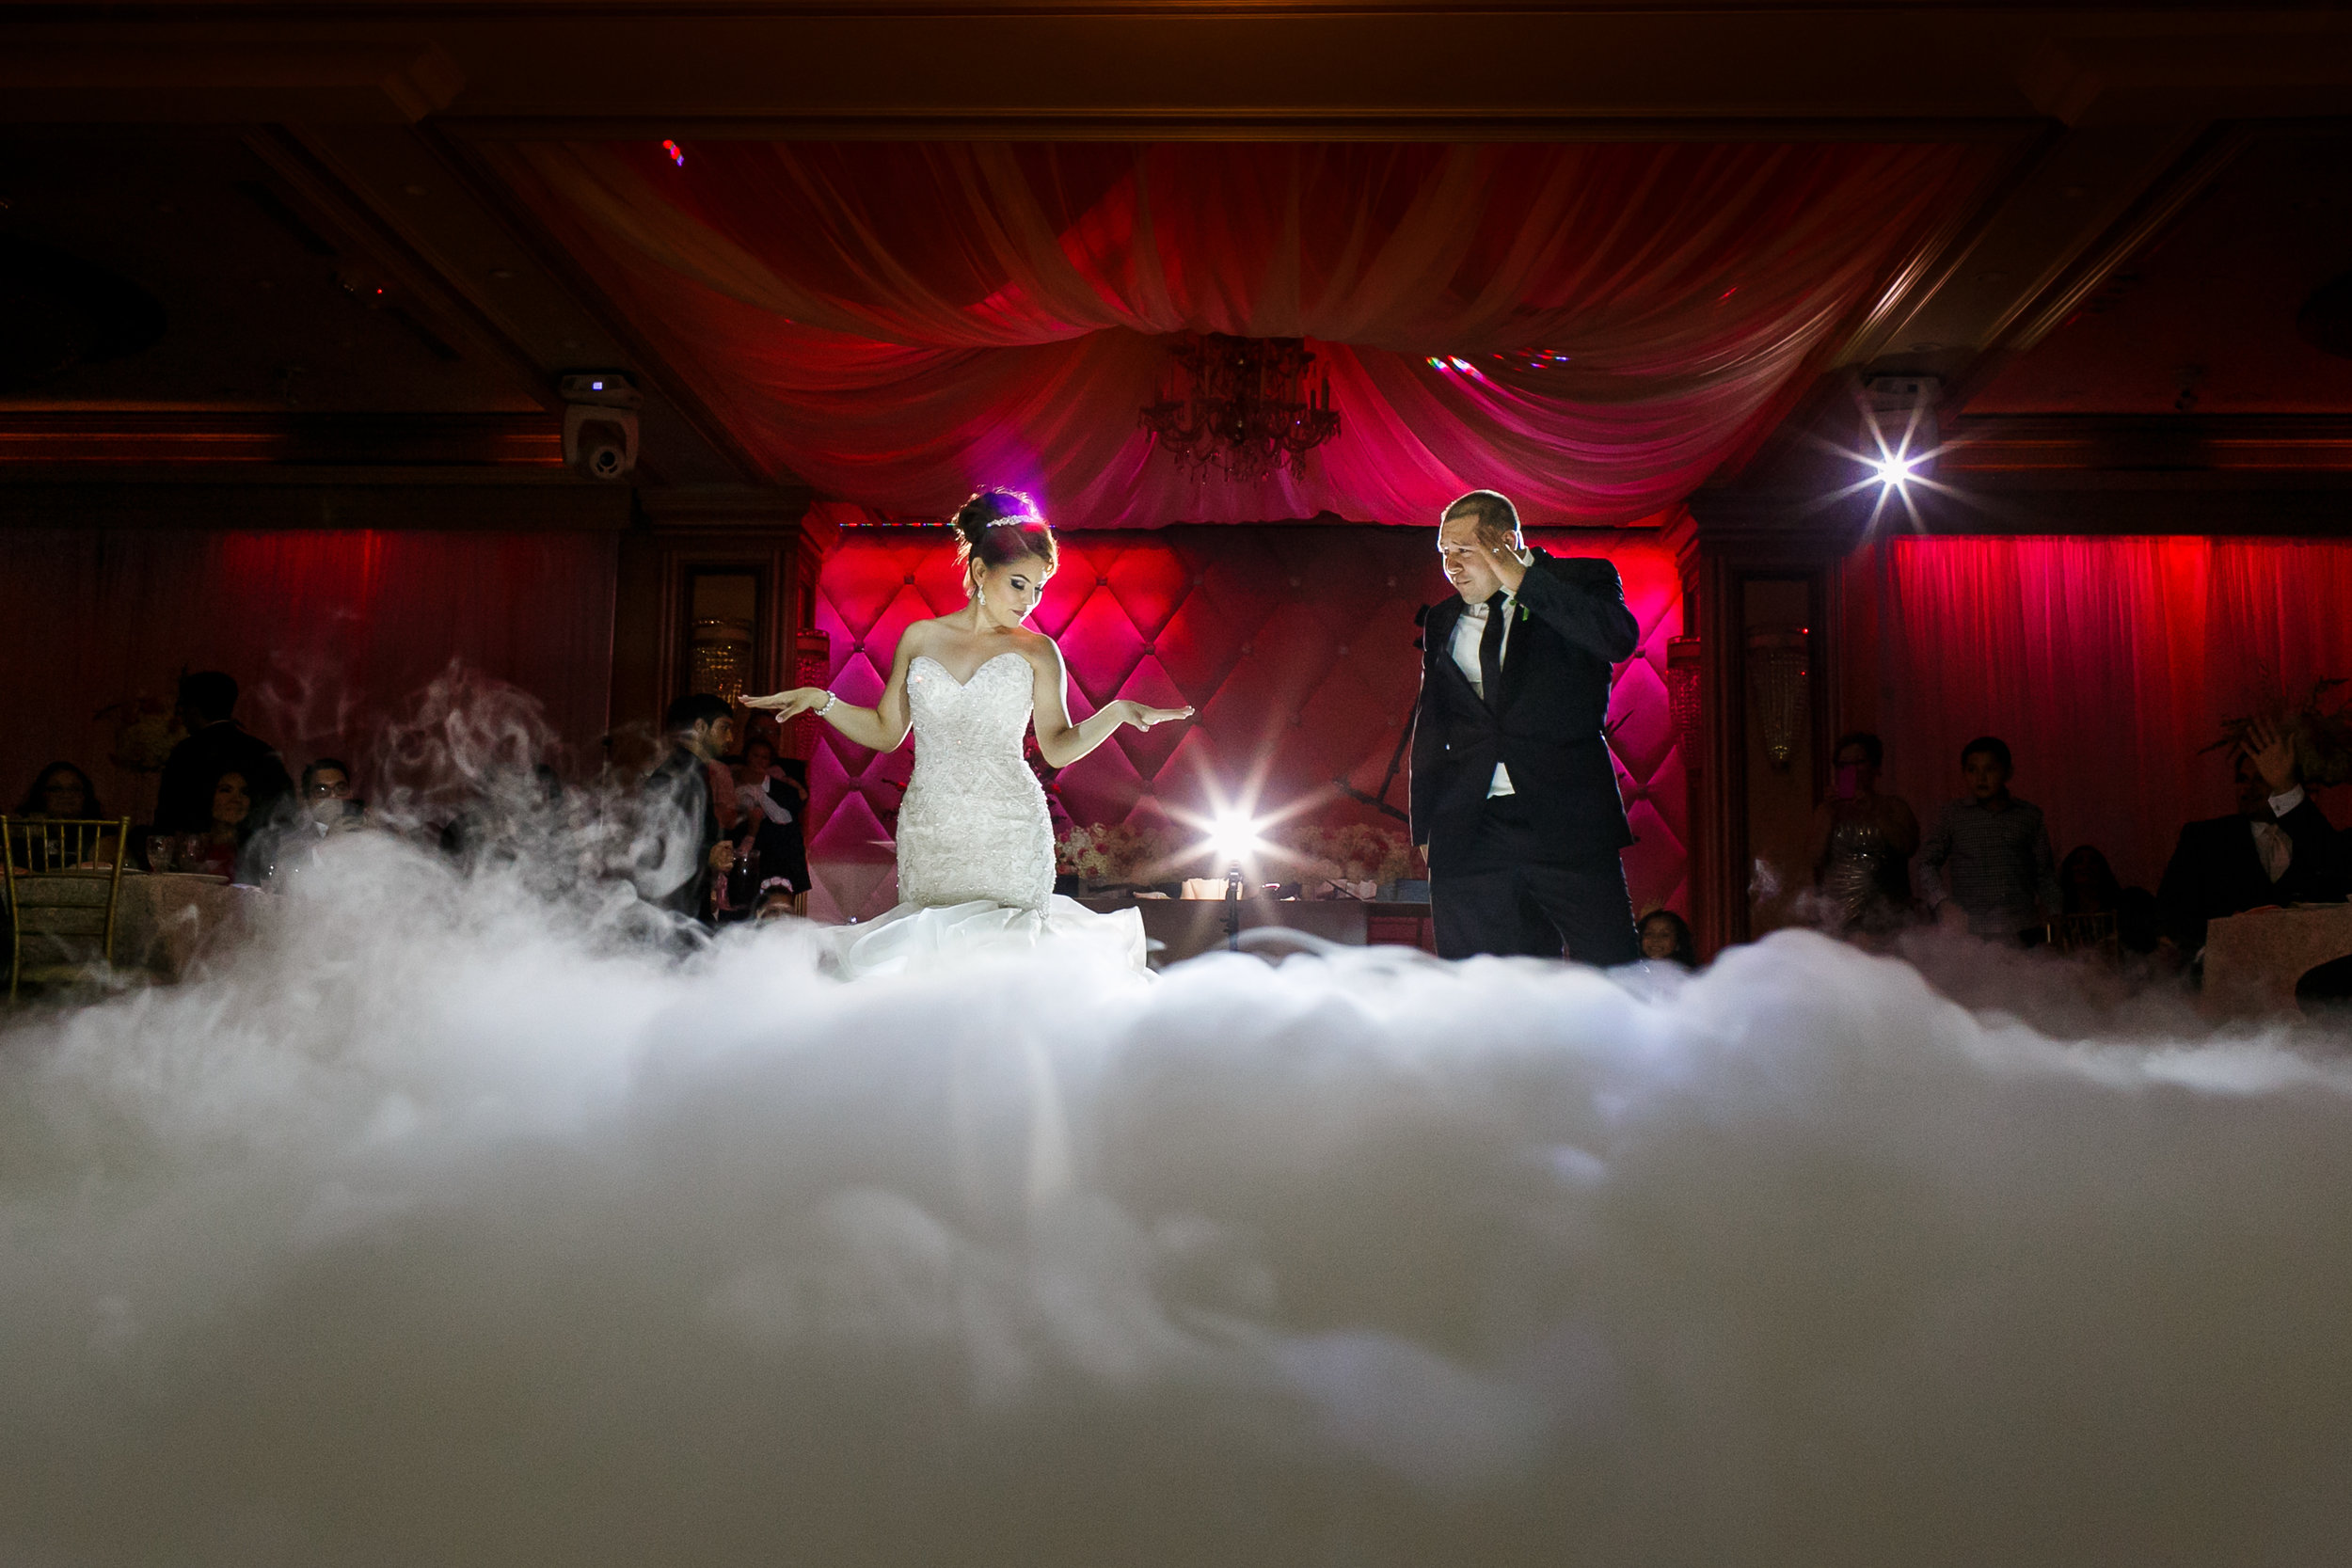 WEDDING RECEPTION AT ANOUSH BANQUET HALL IN GLENDALE, CALIFORNIA